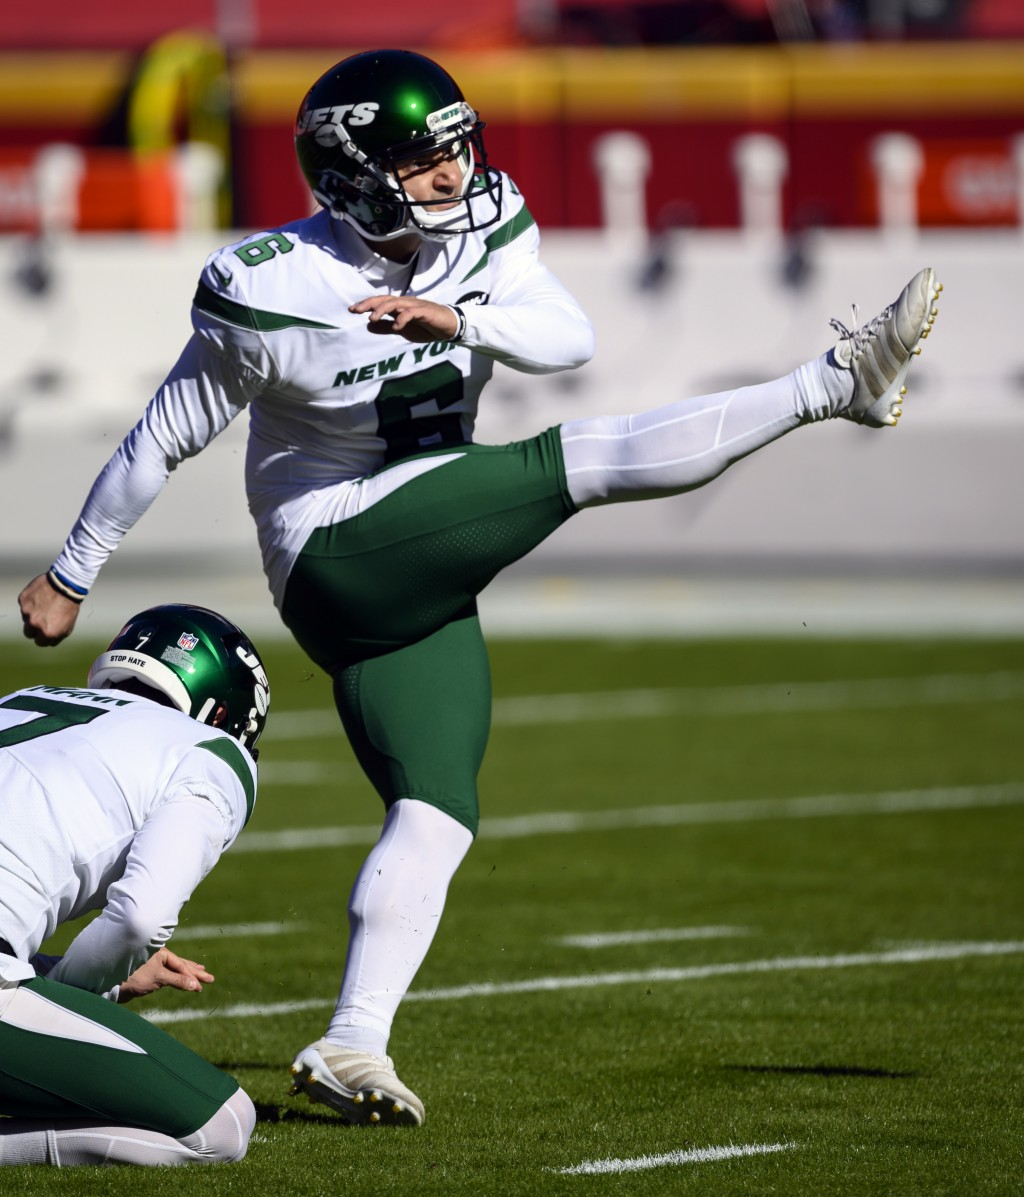 FILE - In this Nov. 1, 2020, file photo, New York Jets kicker Sergio Castillo (6) warms up before an NFL football game against the Kansas City Chiefs ...